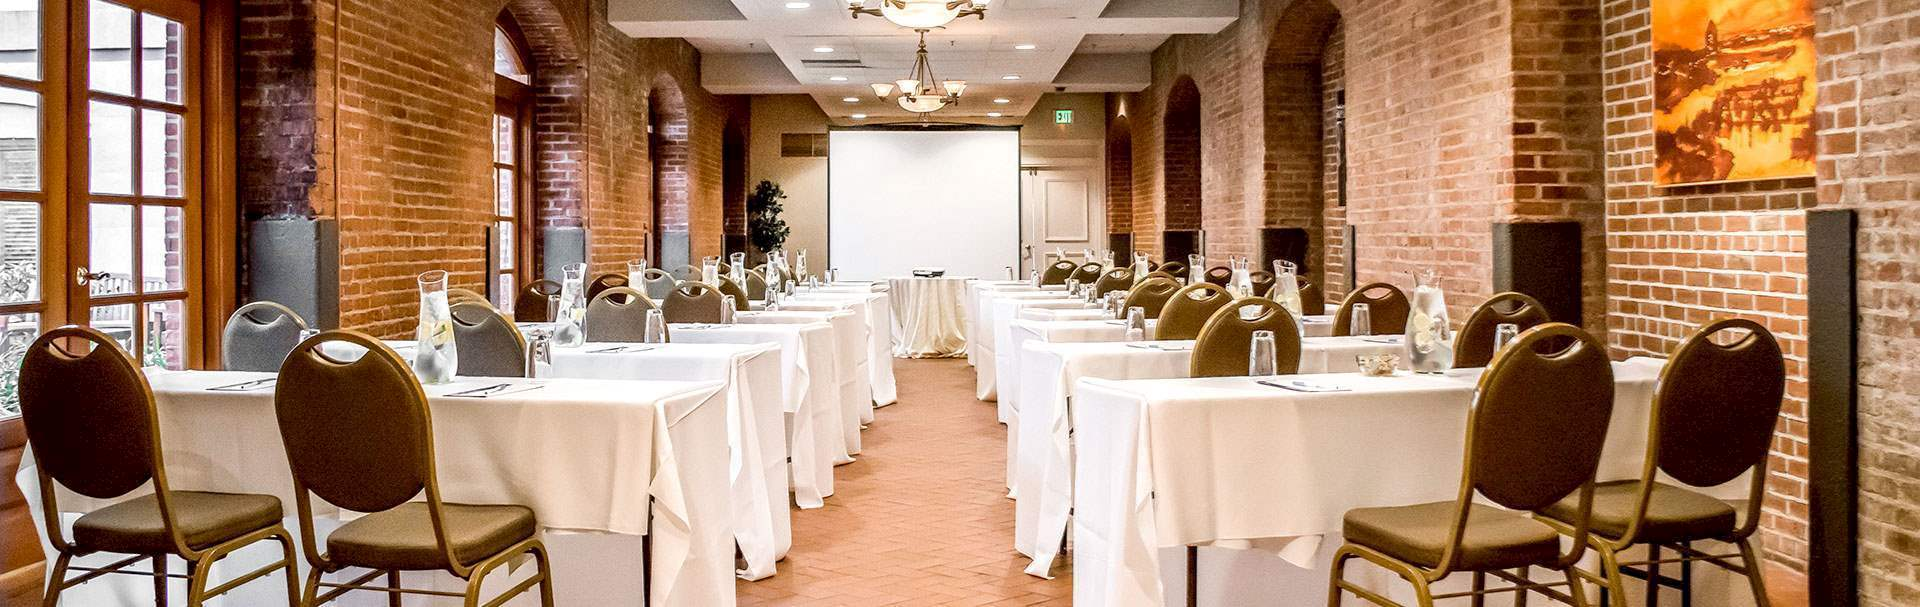 Special Events in Inn at Henderson's Wharf Baltimore, Maryland